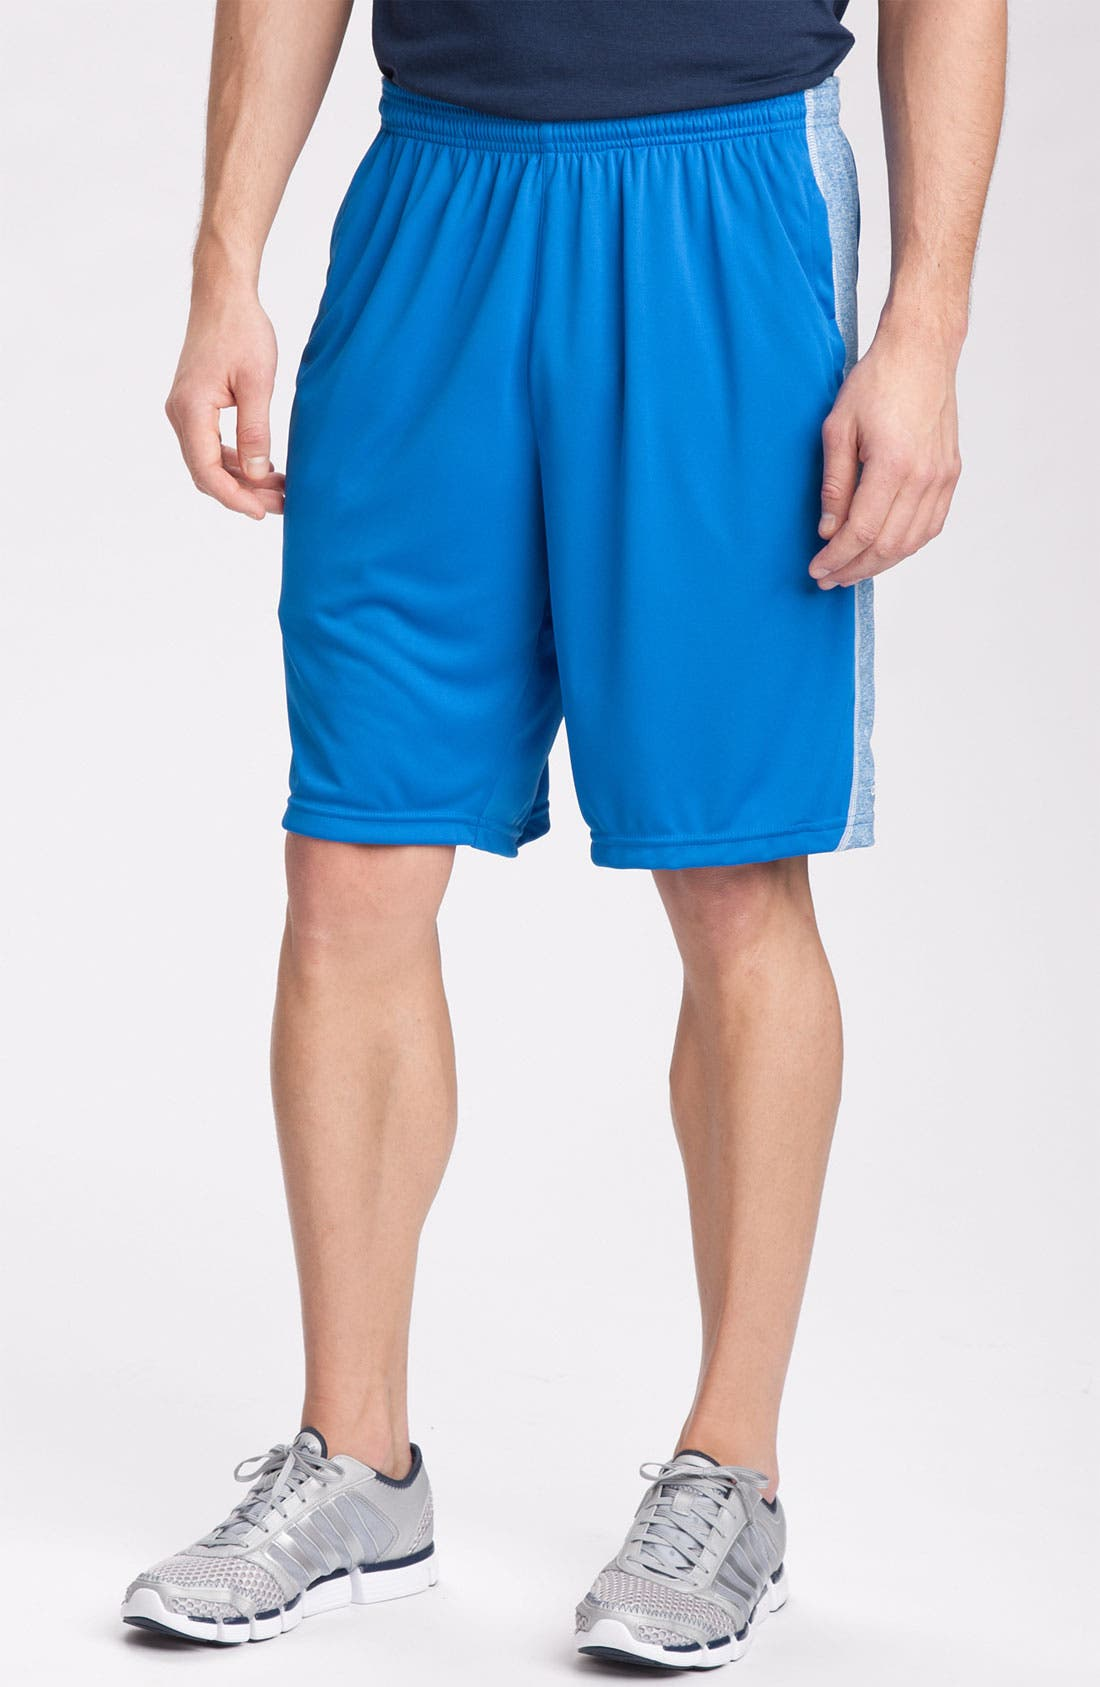 Alternate Image 1 Selected - adidas 'Force' Shorts